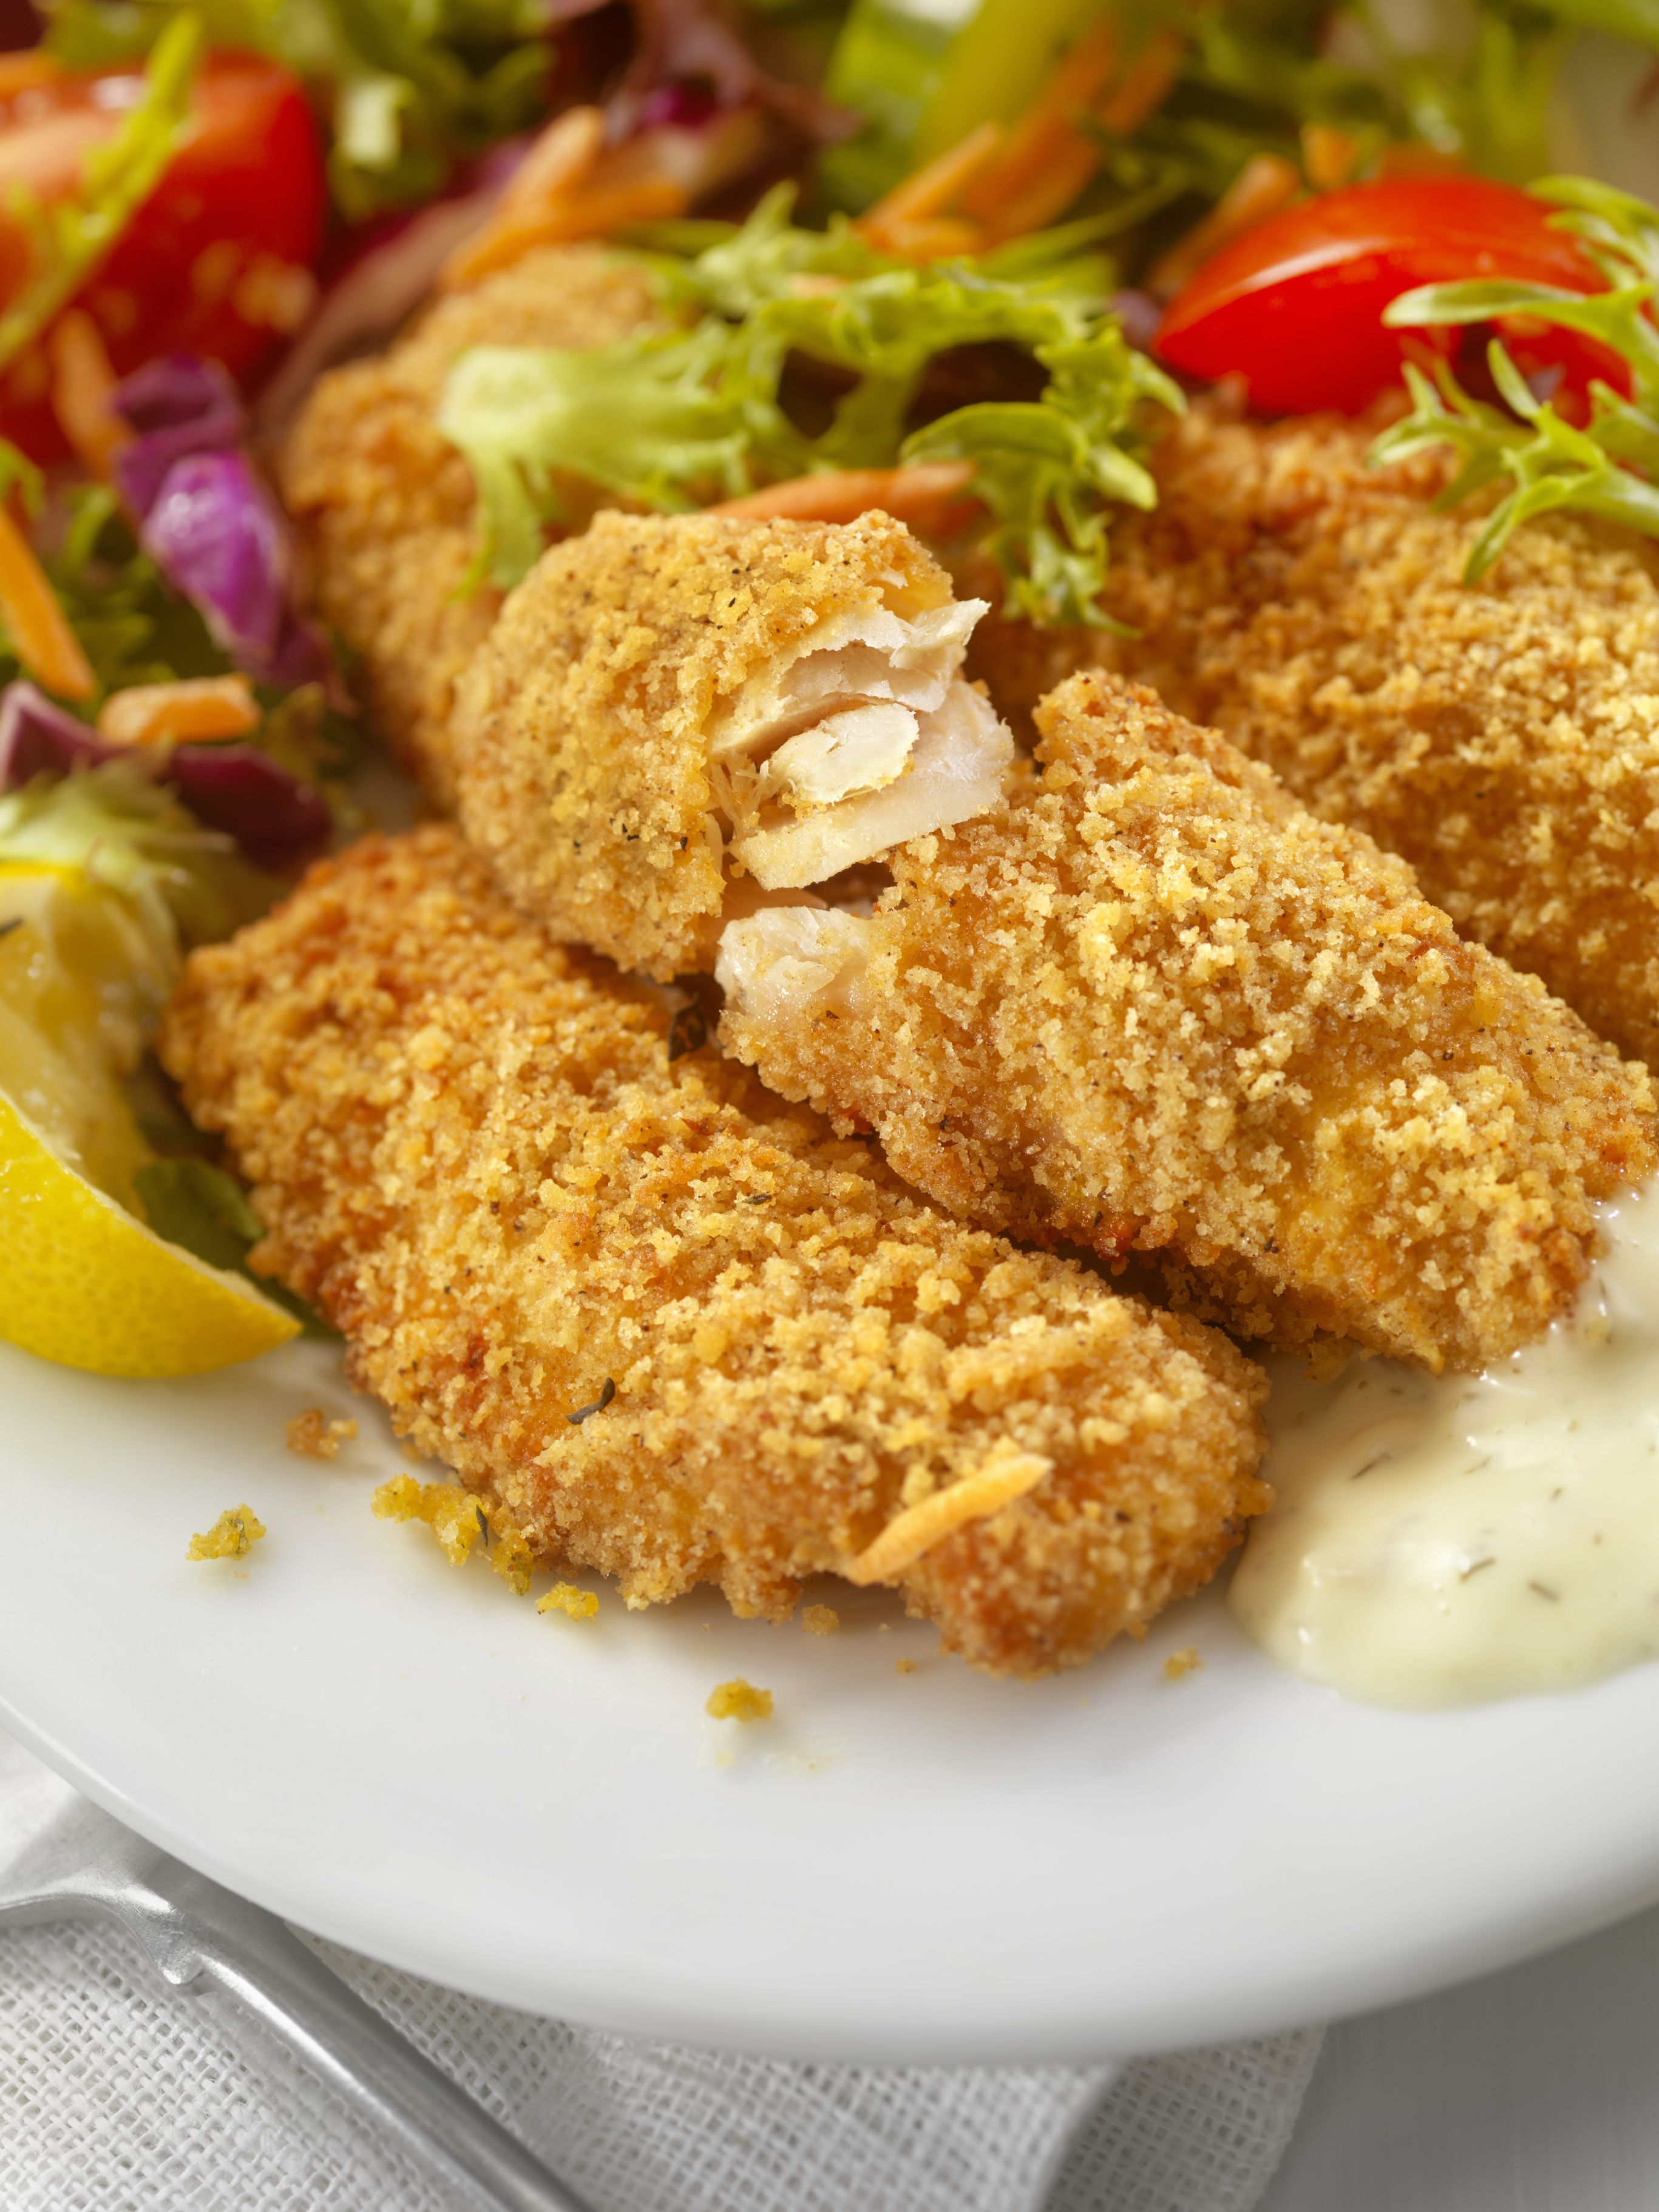 Parmesan baked fish fillet recipe for Breaded pan fried fish